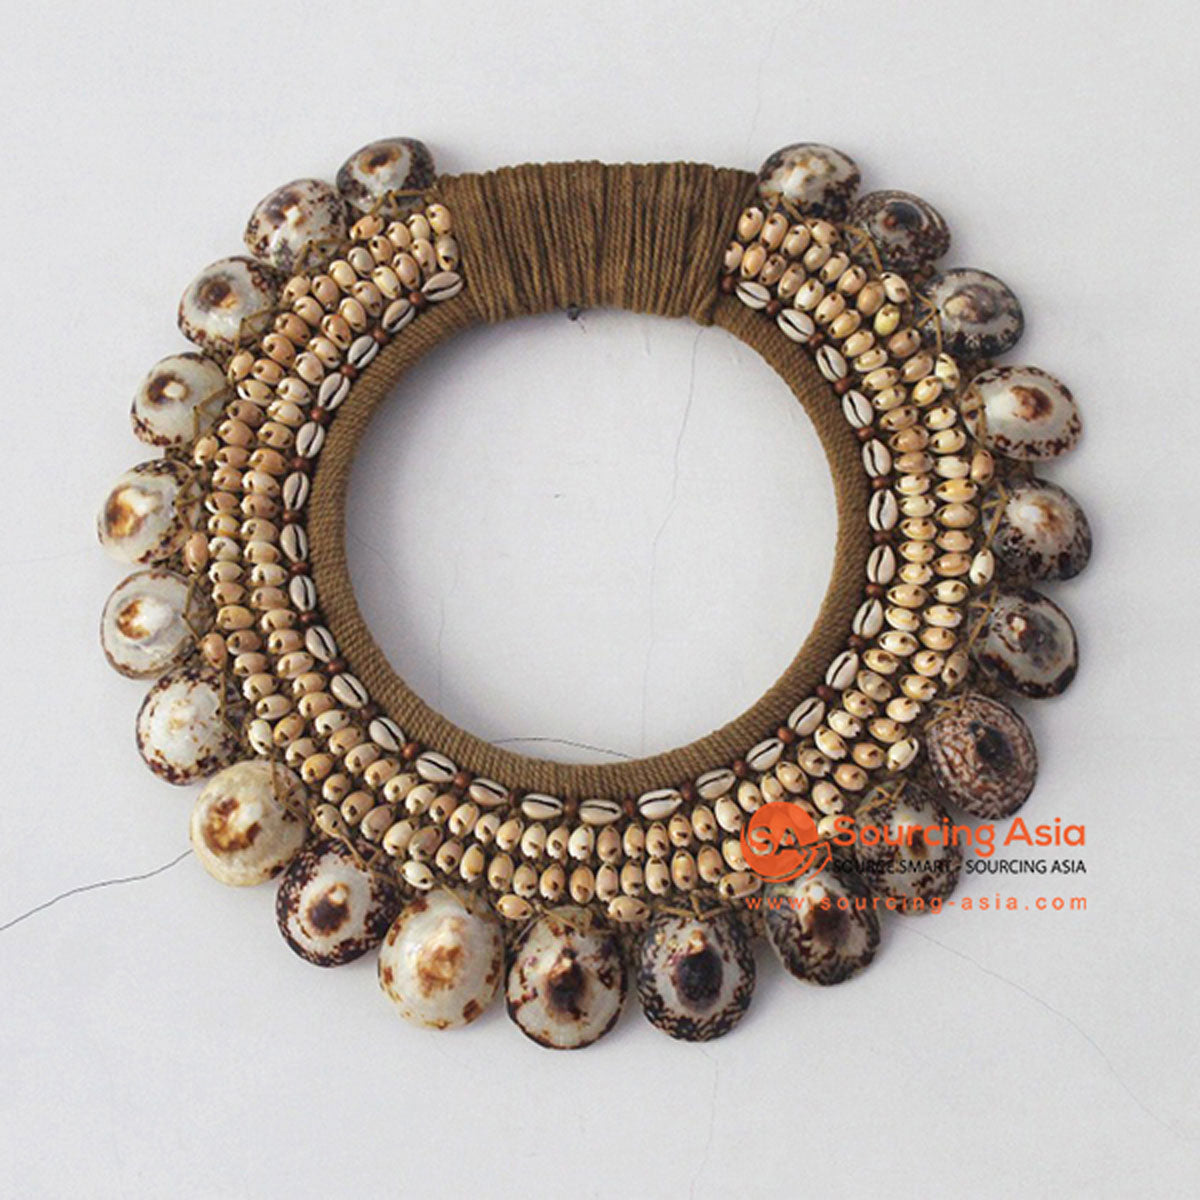 SHL068-12 ANTIQUE NATURAL SHELL ROUND HANGING WALL DECORATION